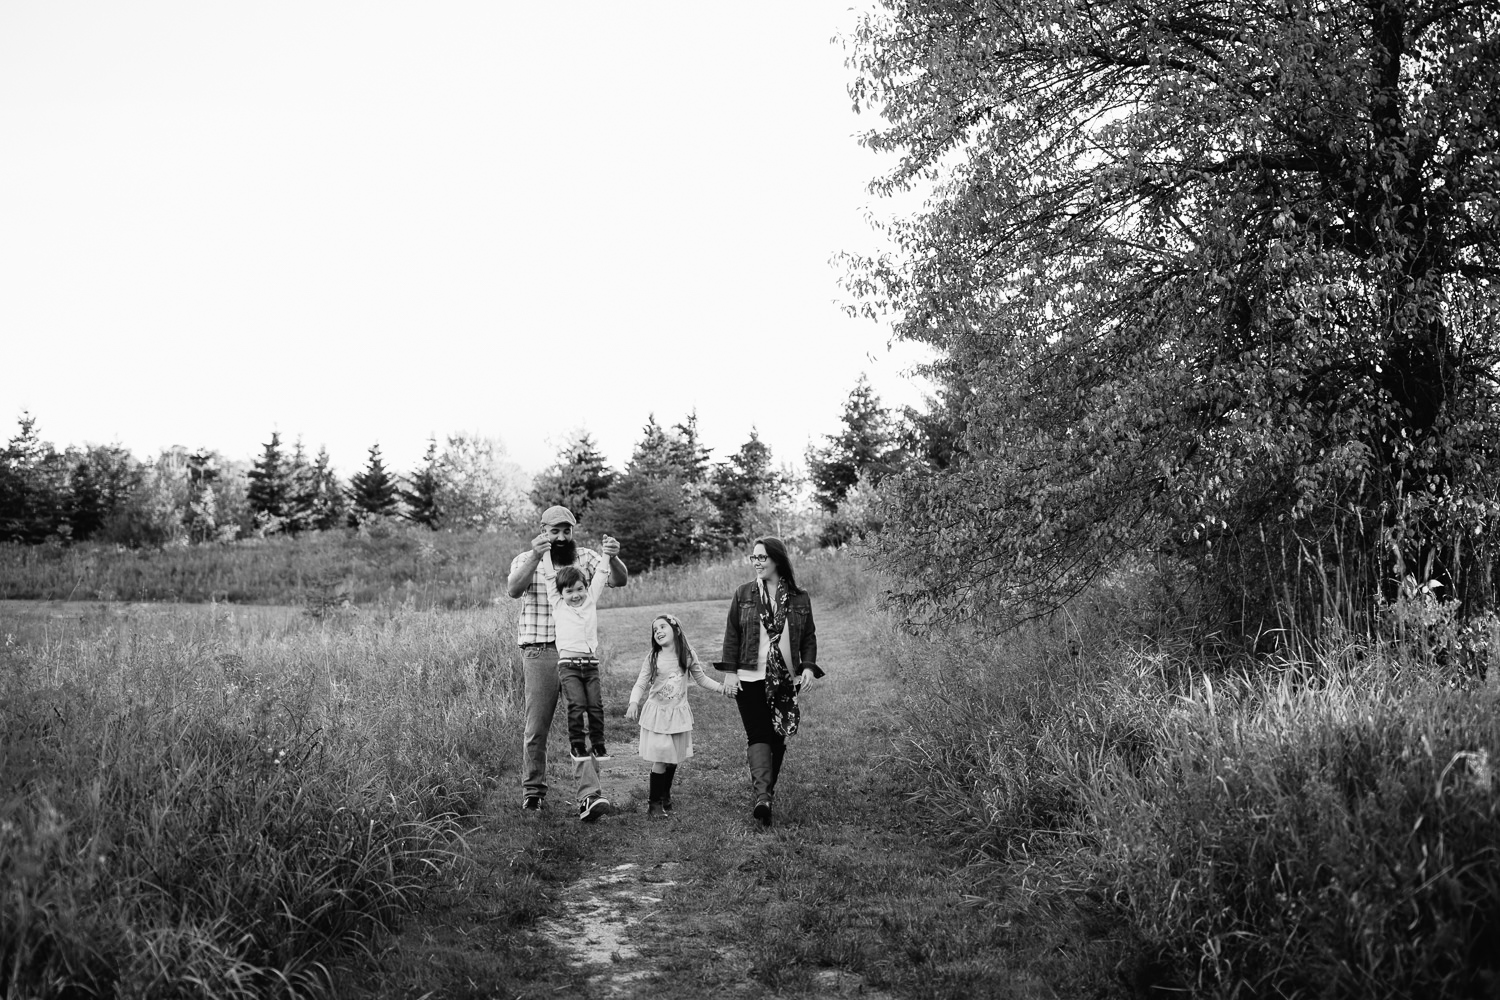 family of 4 holding hands, walking down path in grassy field, dad swinging son by both arms, mother and daughter smiling at them - GTA Lifestyle Photos